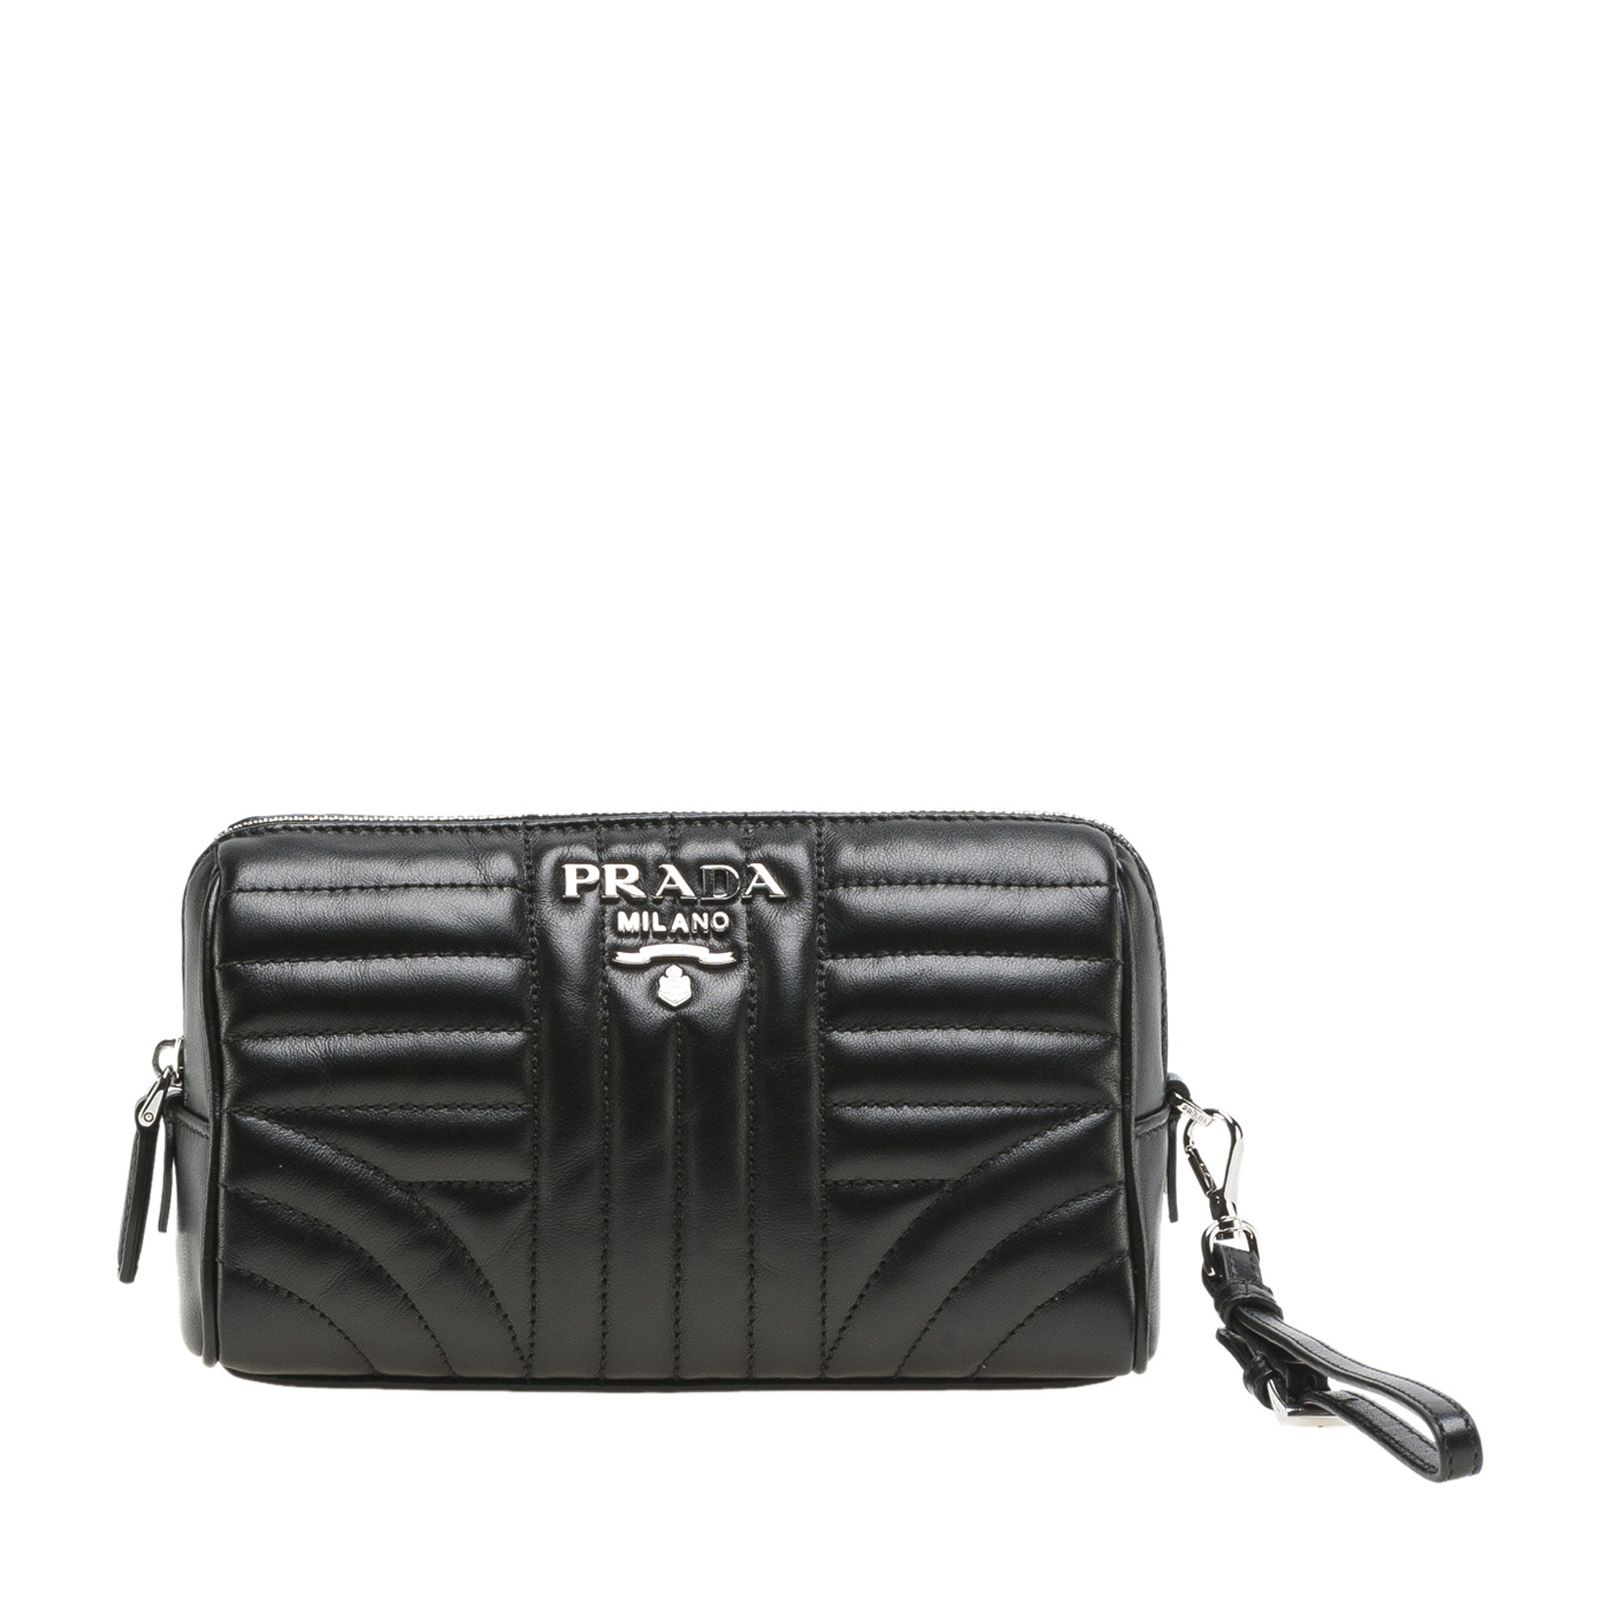 365f26e6a7cc91 Prada Clutch Bag | Stanford Center for Opportunity Policy in Education